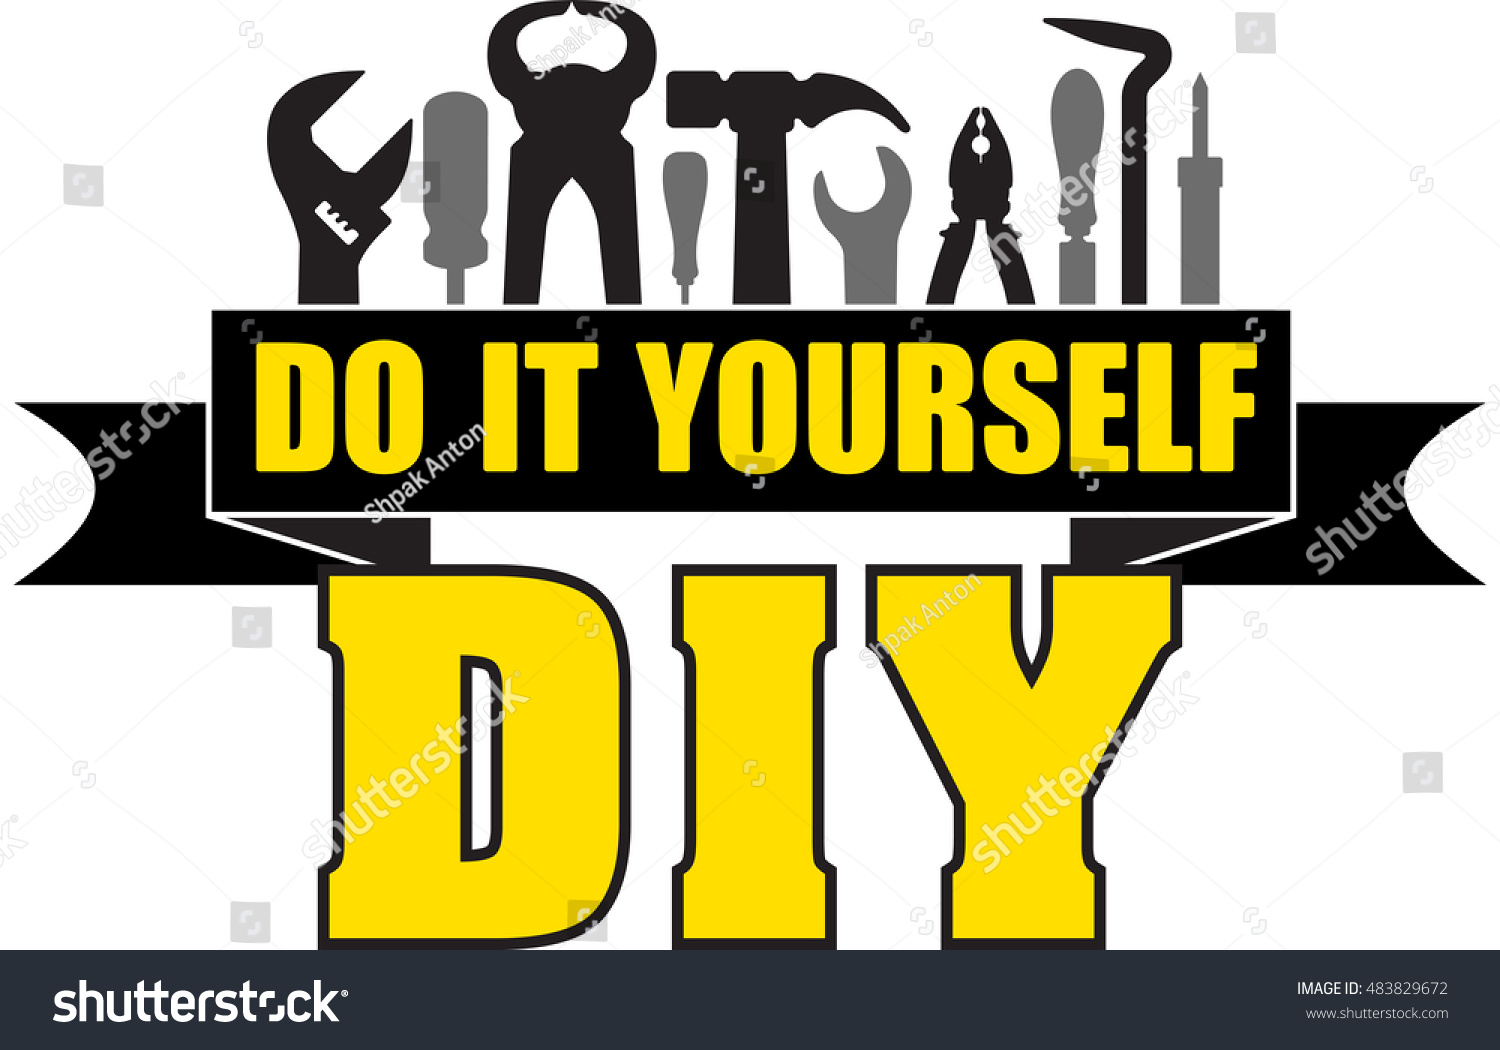 Diy do yourself banner silhouettes workers stock vector 483829672 diy do it yourself banner with silhouettes of workers tools hammer screwdriver pliers solutioingenieria Image collections